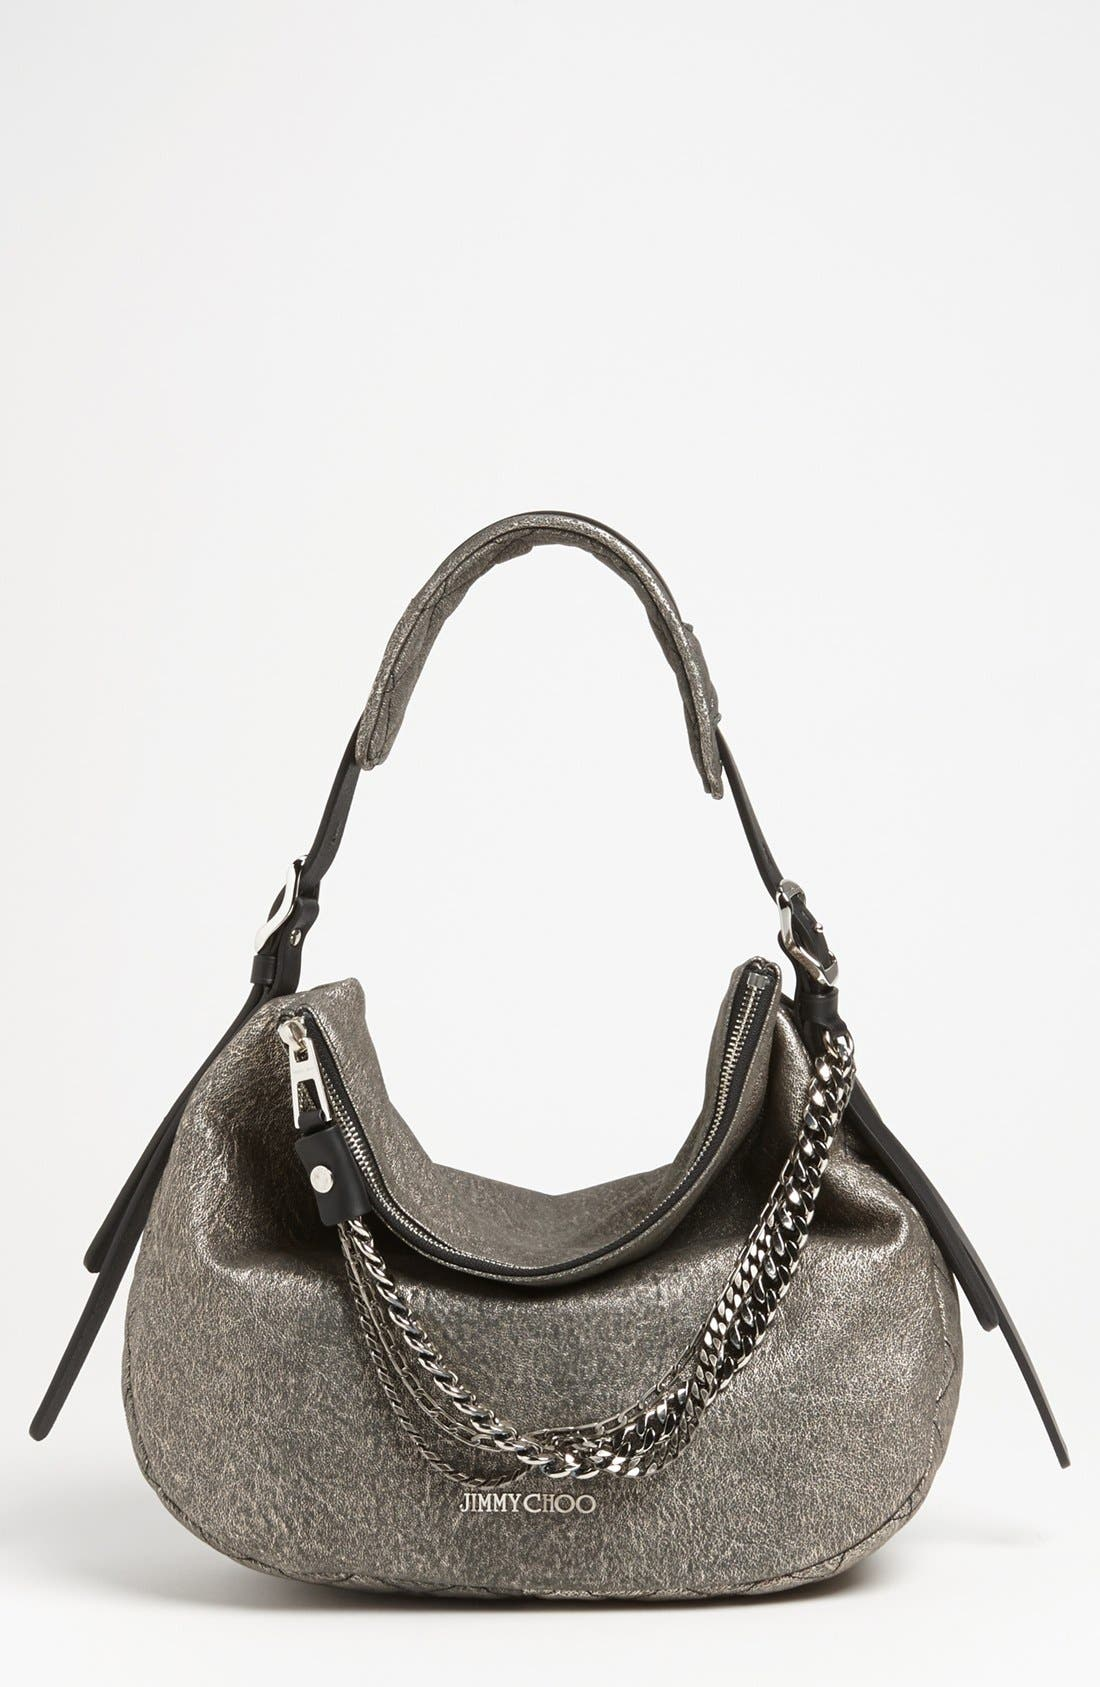 Alternate Image 1 Selected - Jimmy Choo 'Small Boho' Suede Hobo